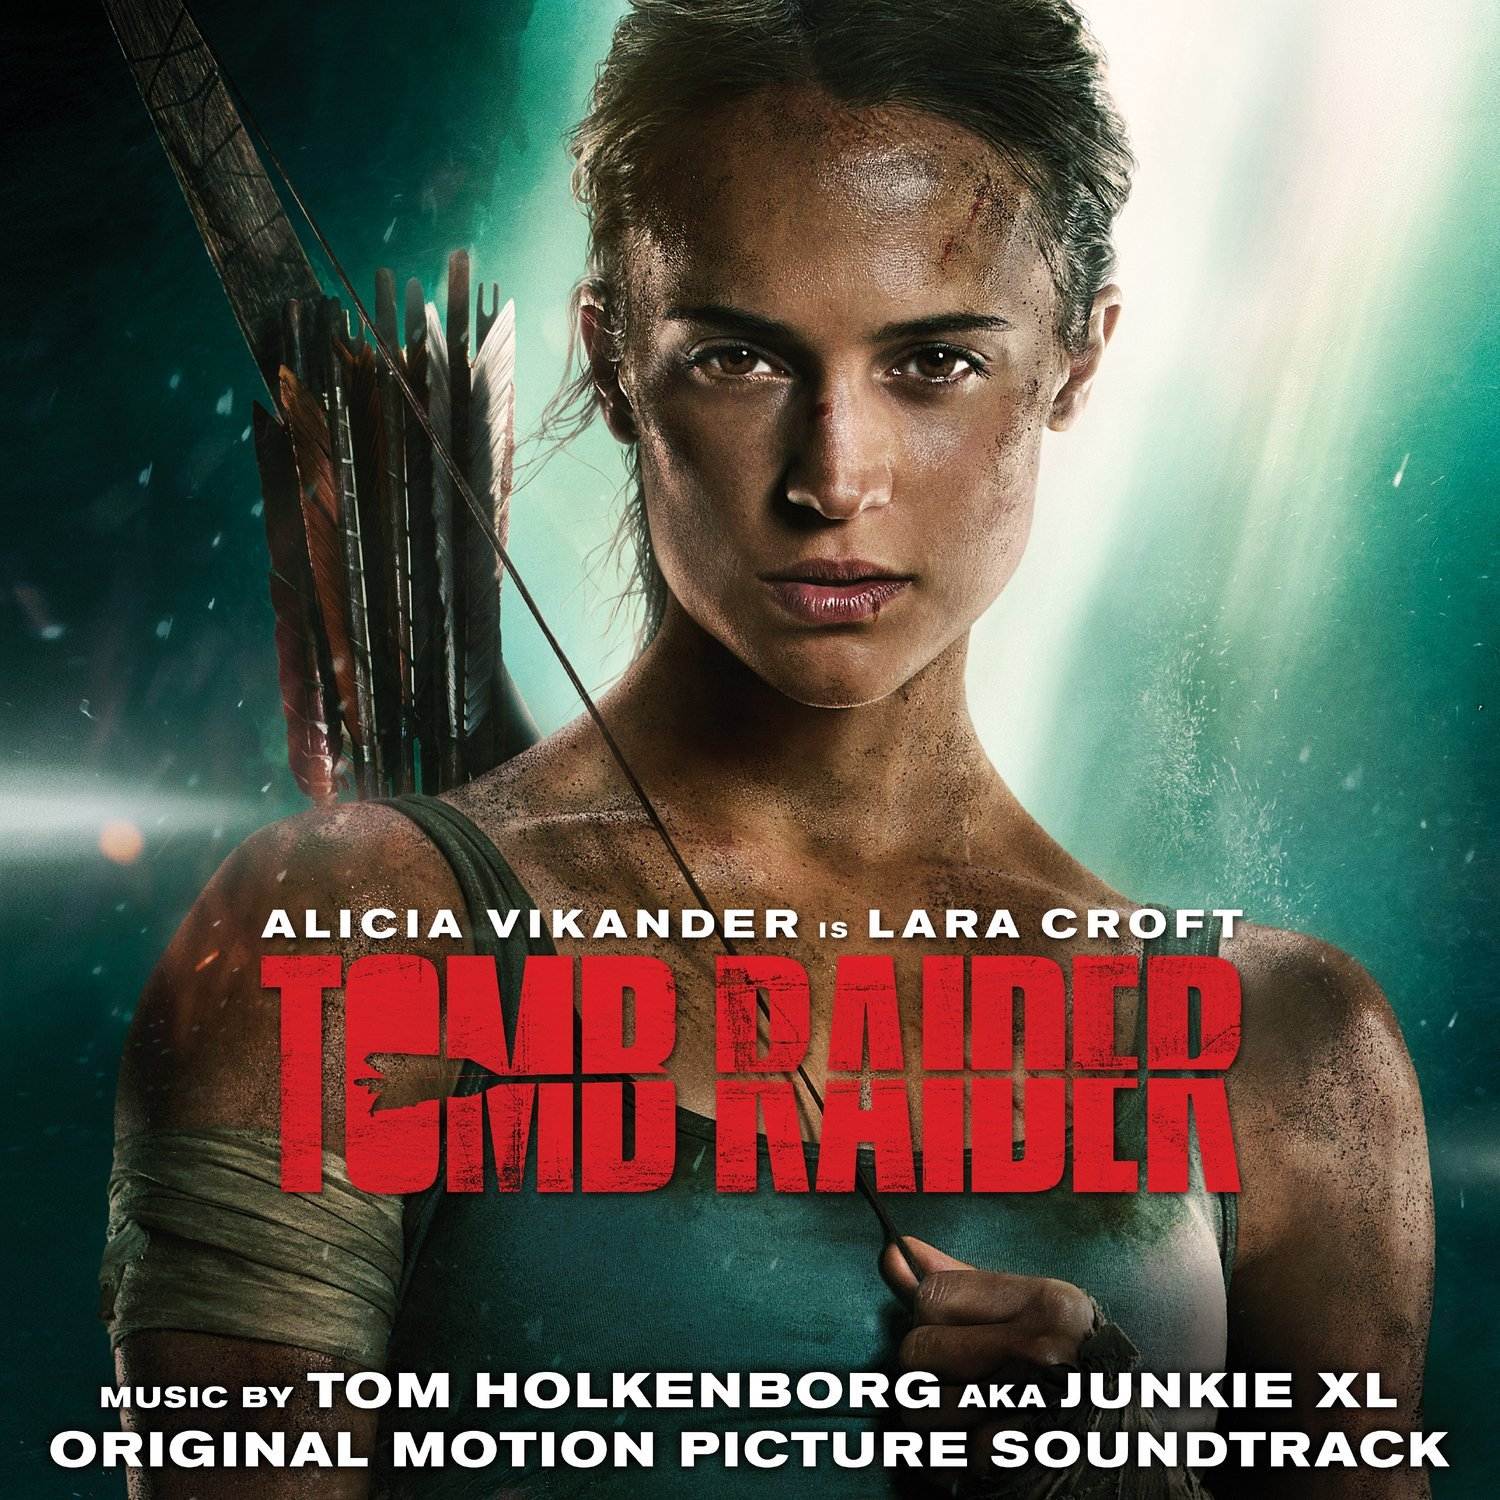 Bande Originale du film Tomb Raider